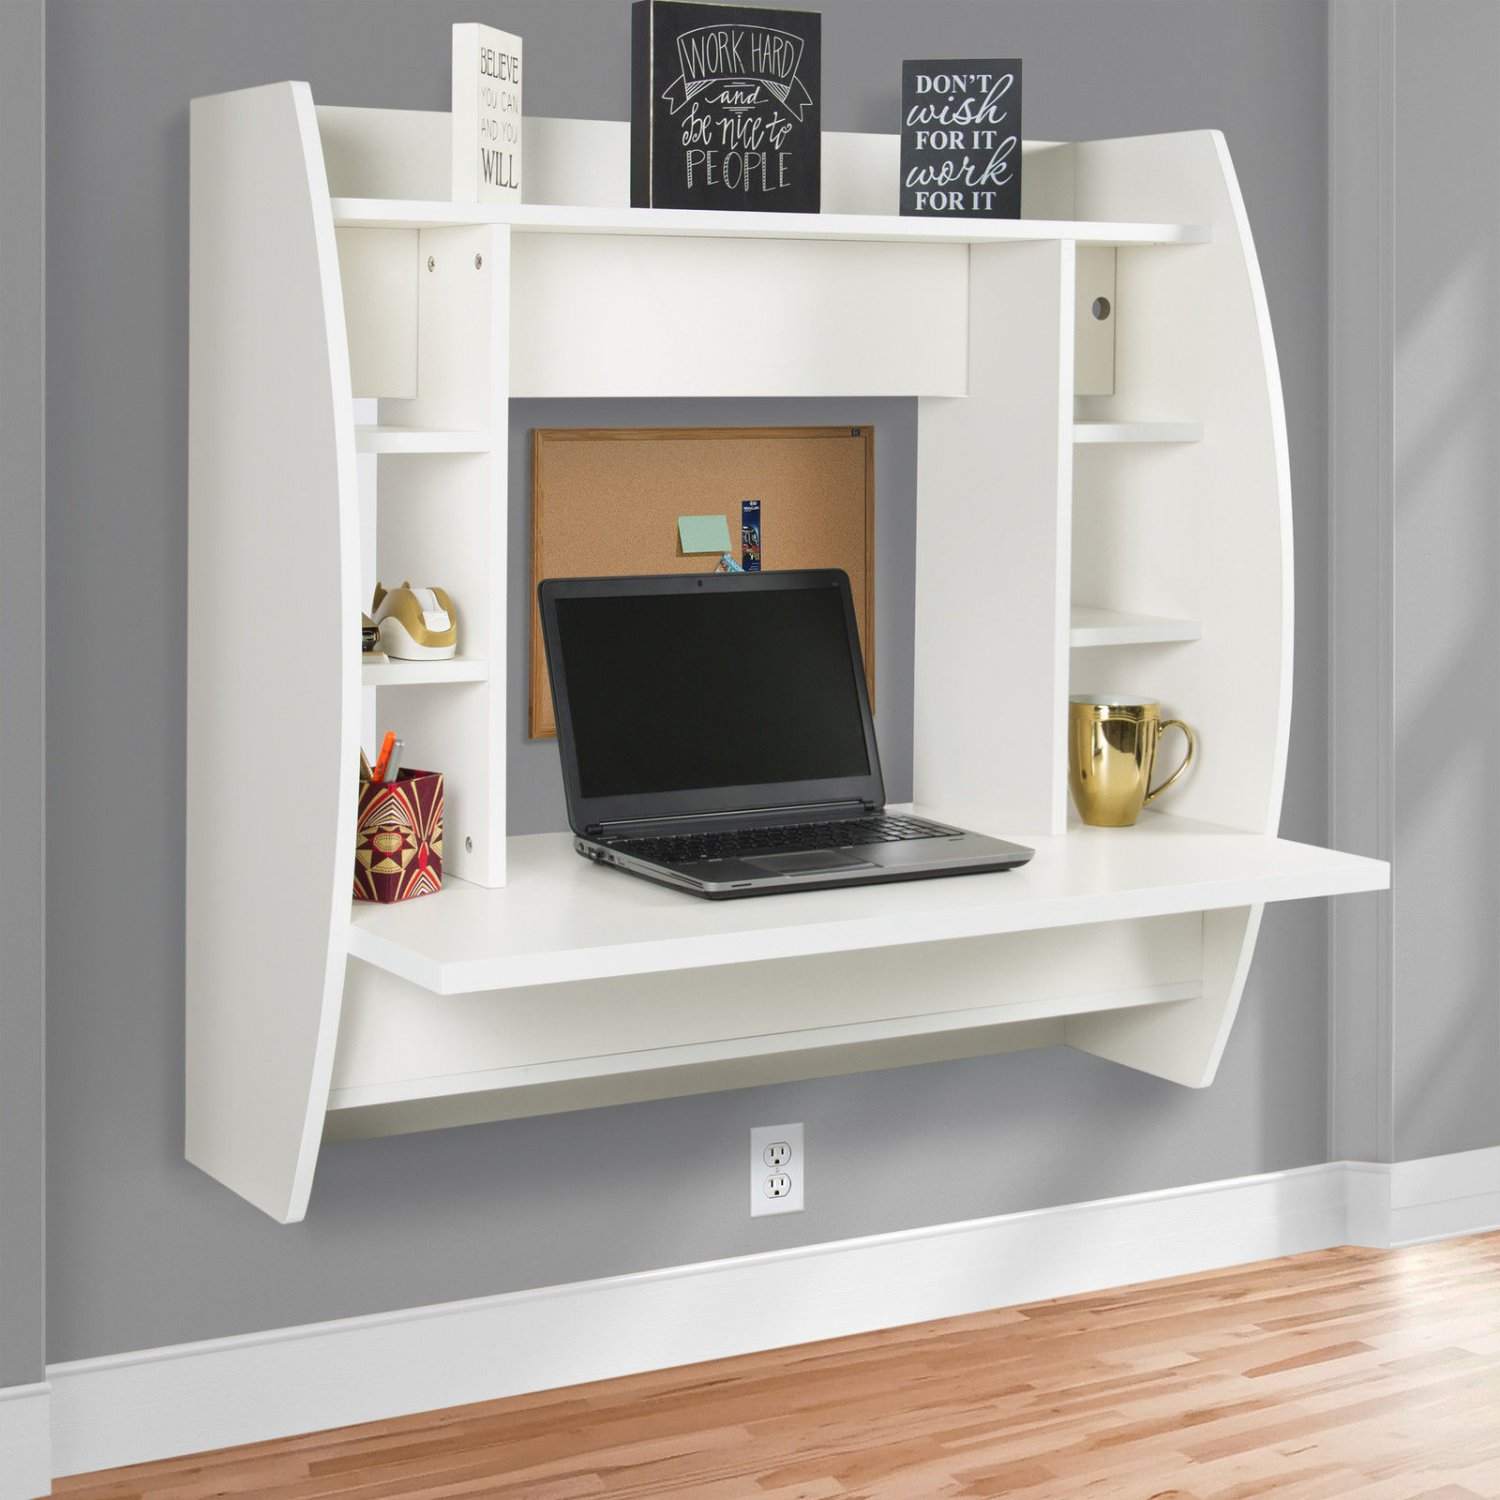 Floating Desk With Storage Wall Mounted Computer Desk Work